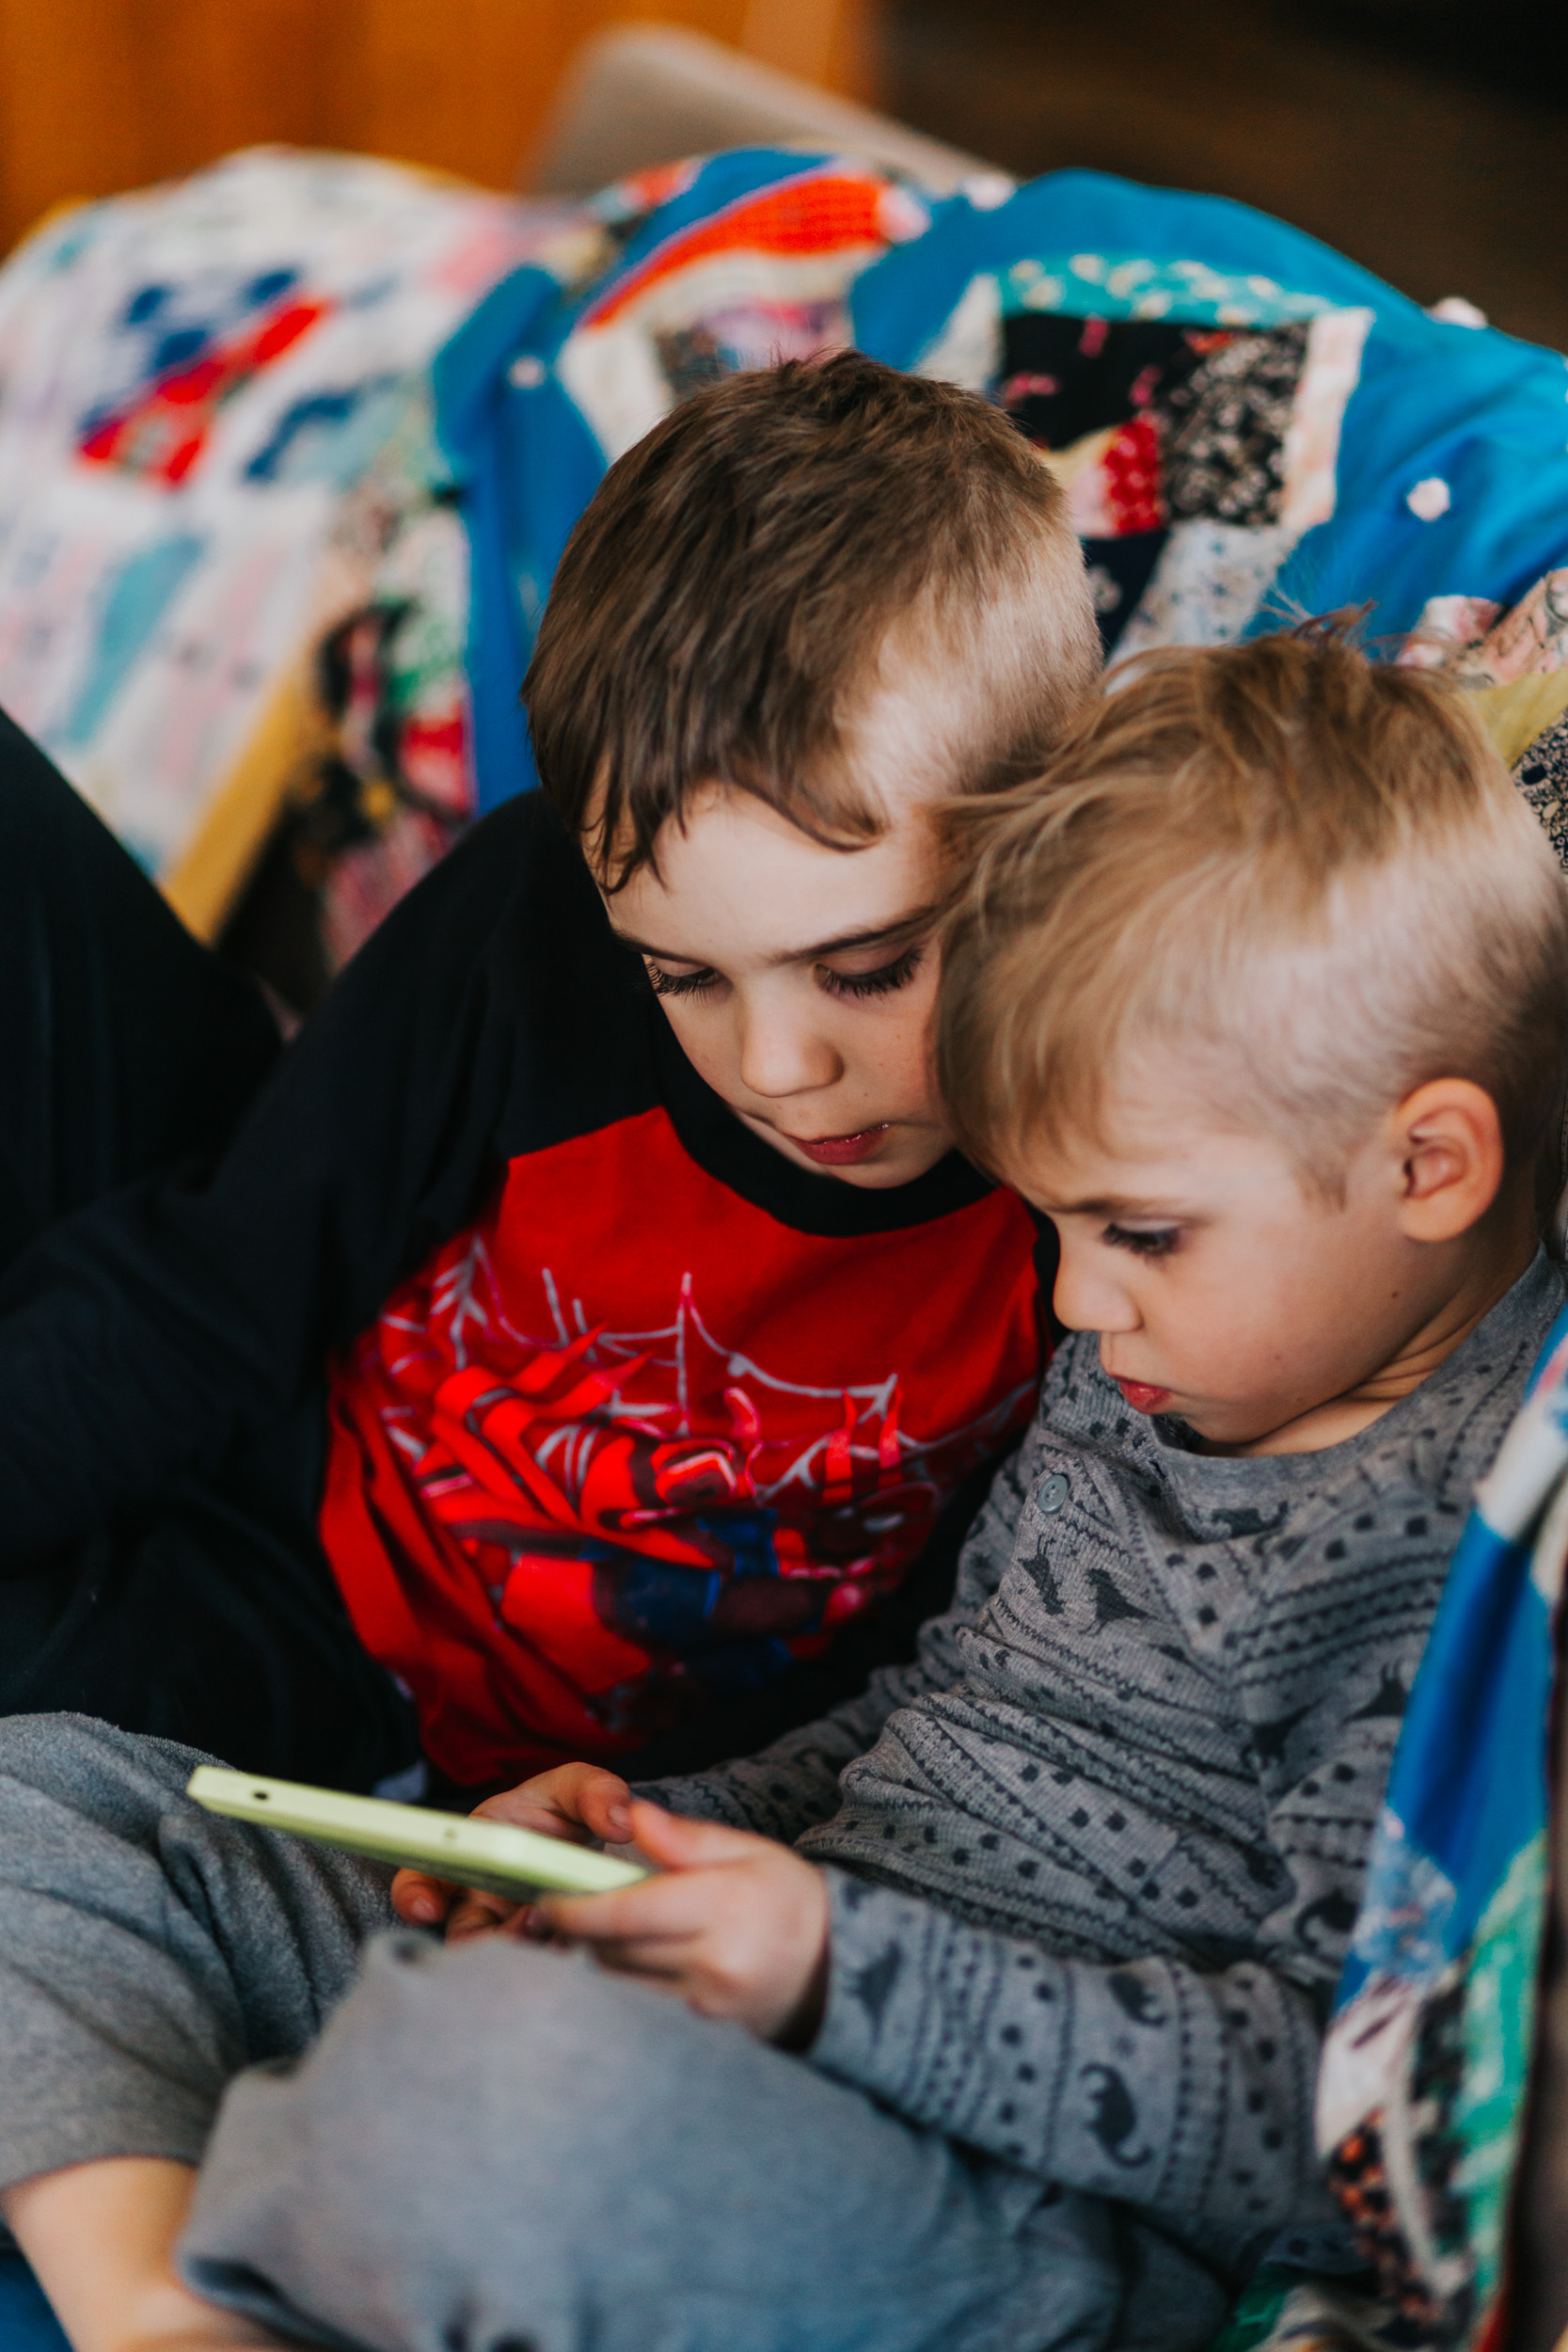 young boys playing on kindle tablet sitting on couch